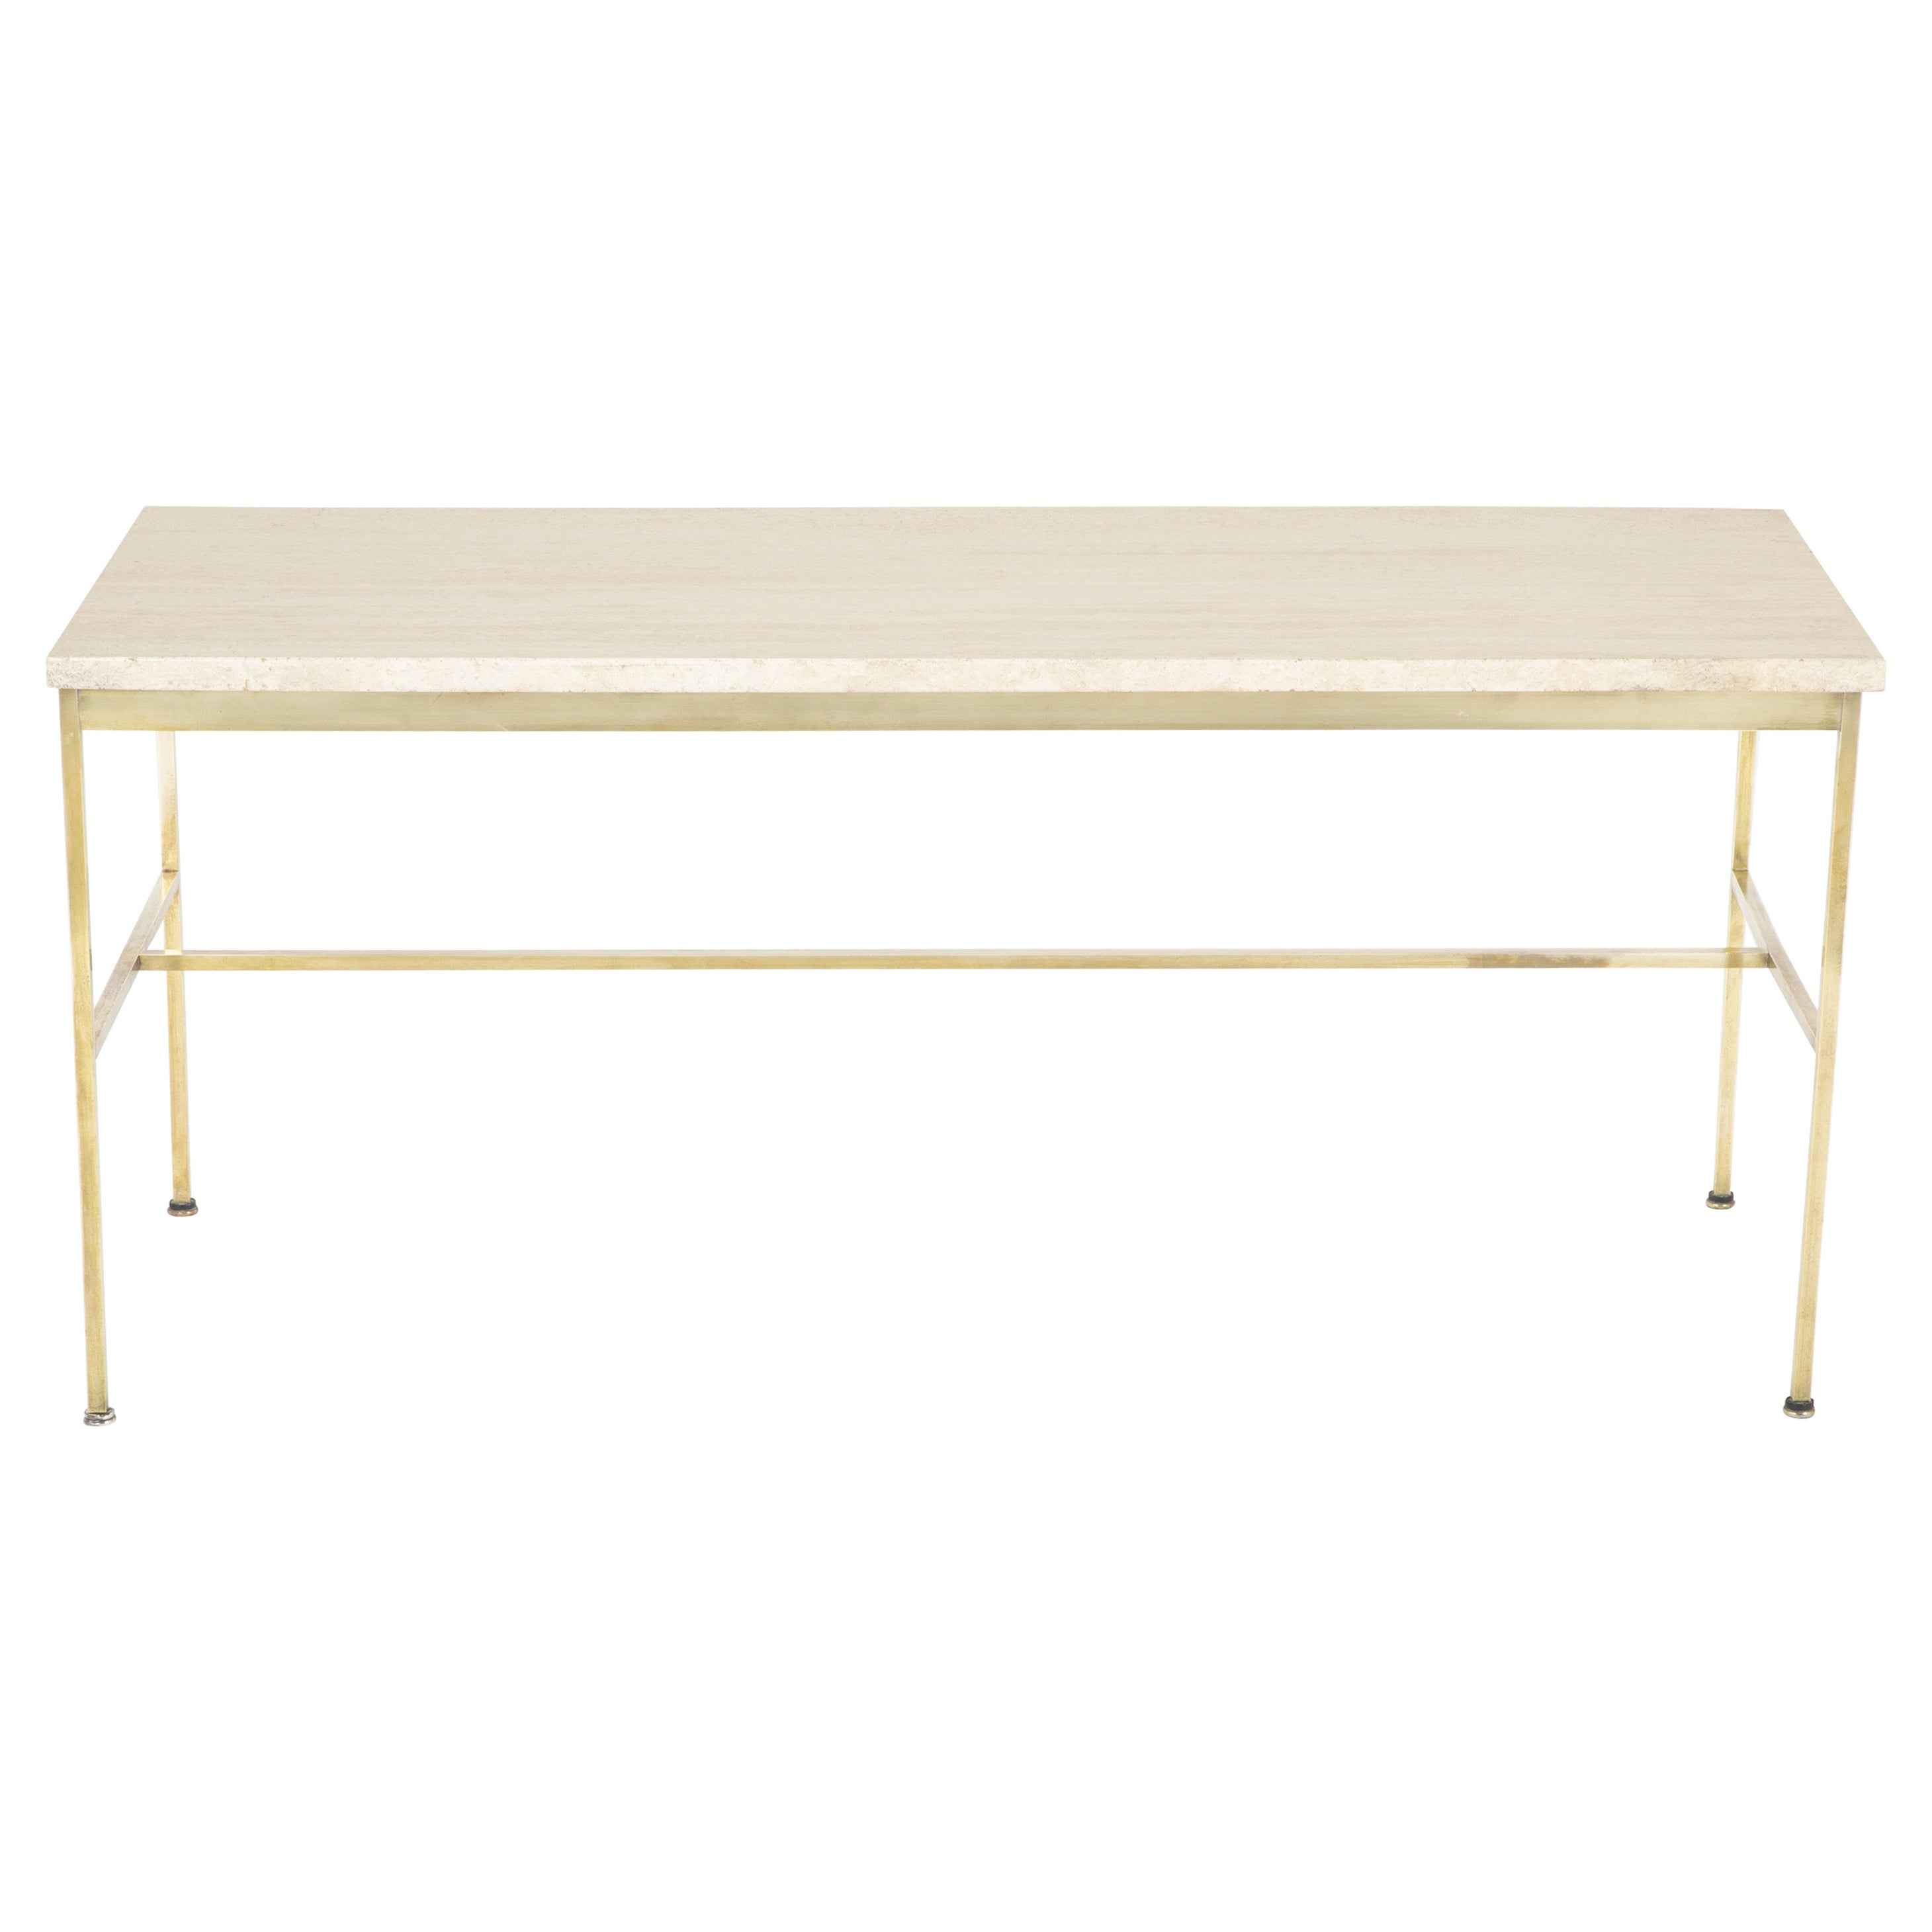 Low Console Table Designed by Paul McCobb for Calvin